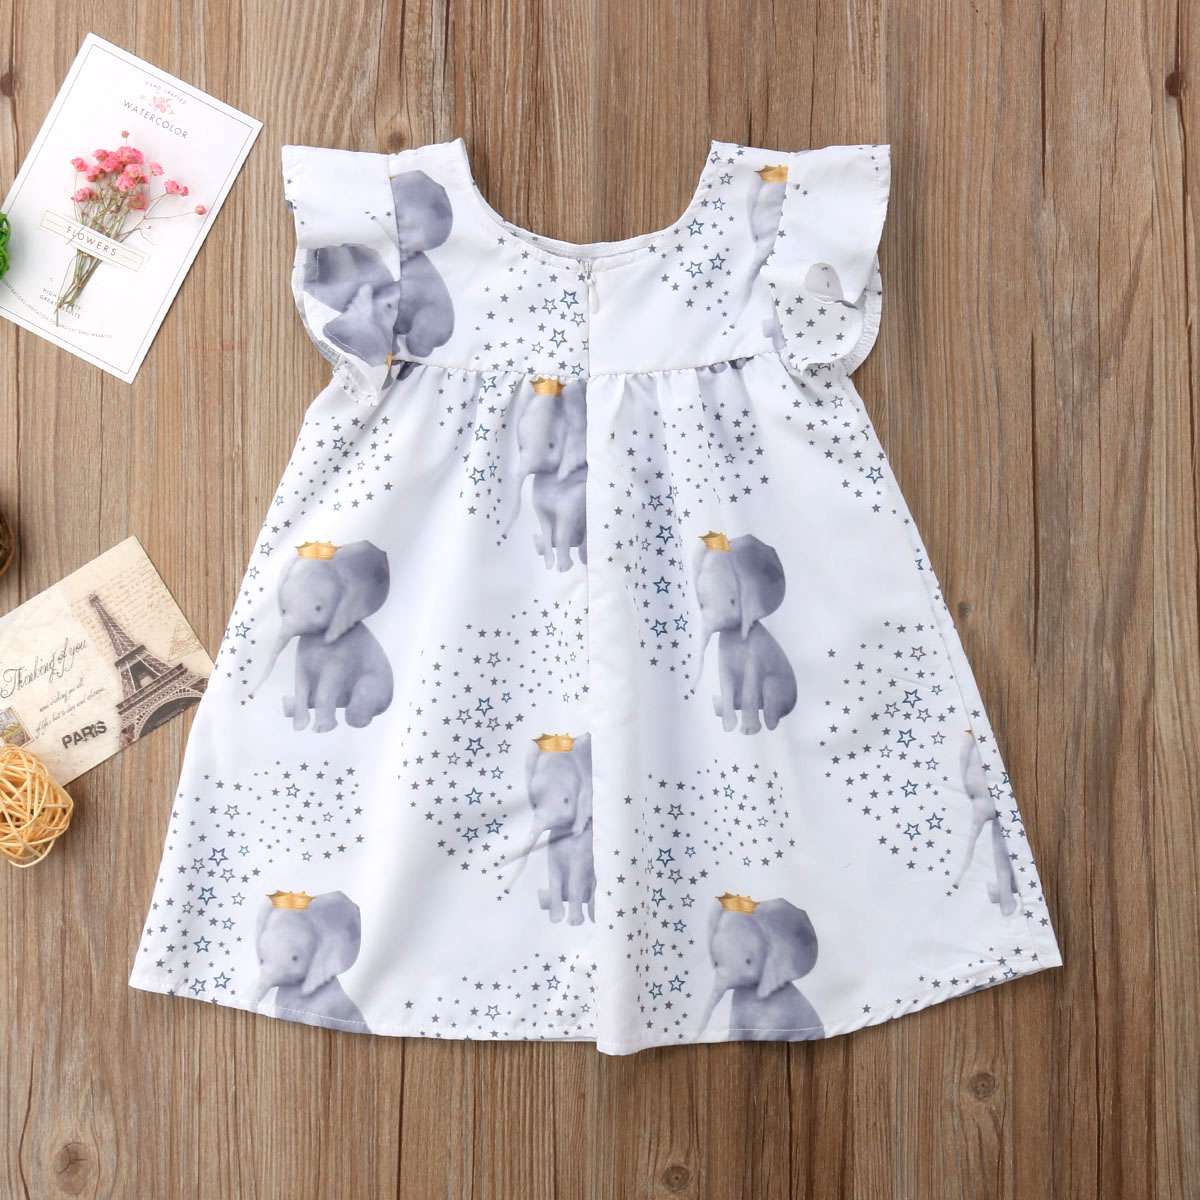 505f62dfa83cb Aliexpress.com : Buy Toddler kid Baby Girls Summer Dress Star Elephant Print  Princess Party Dress Clothes Sundress Children Clothing from Reliable  Dresses ...